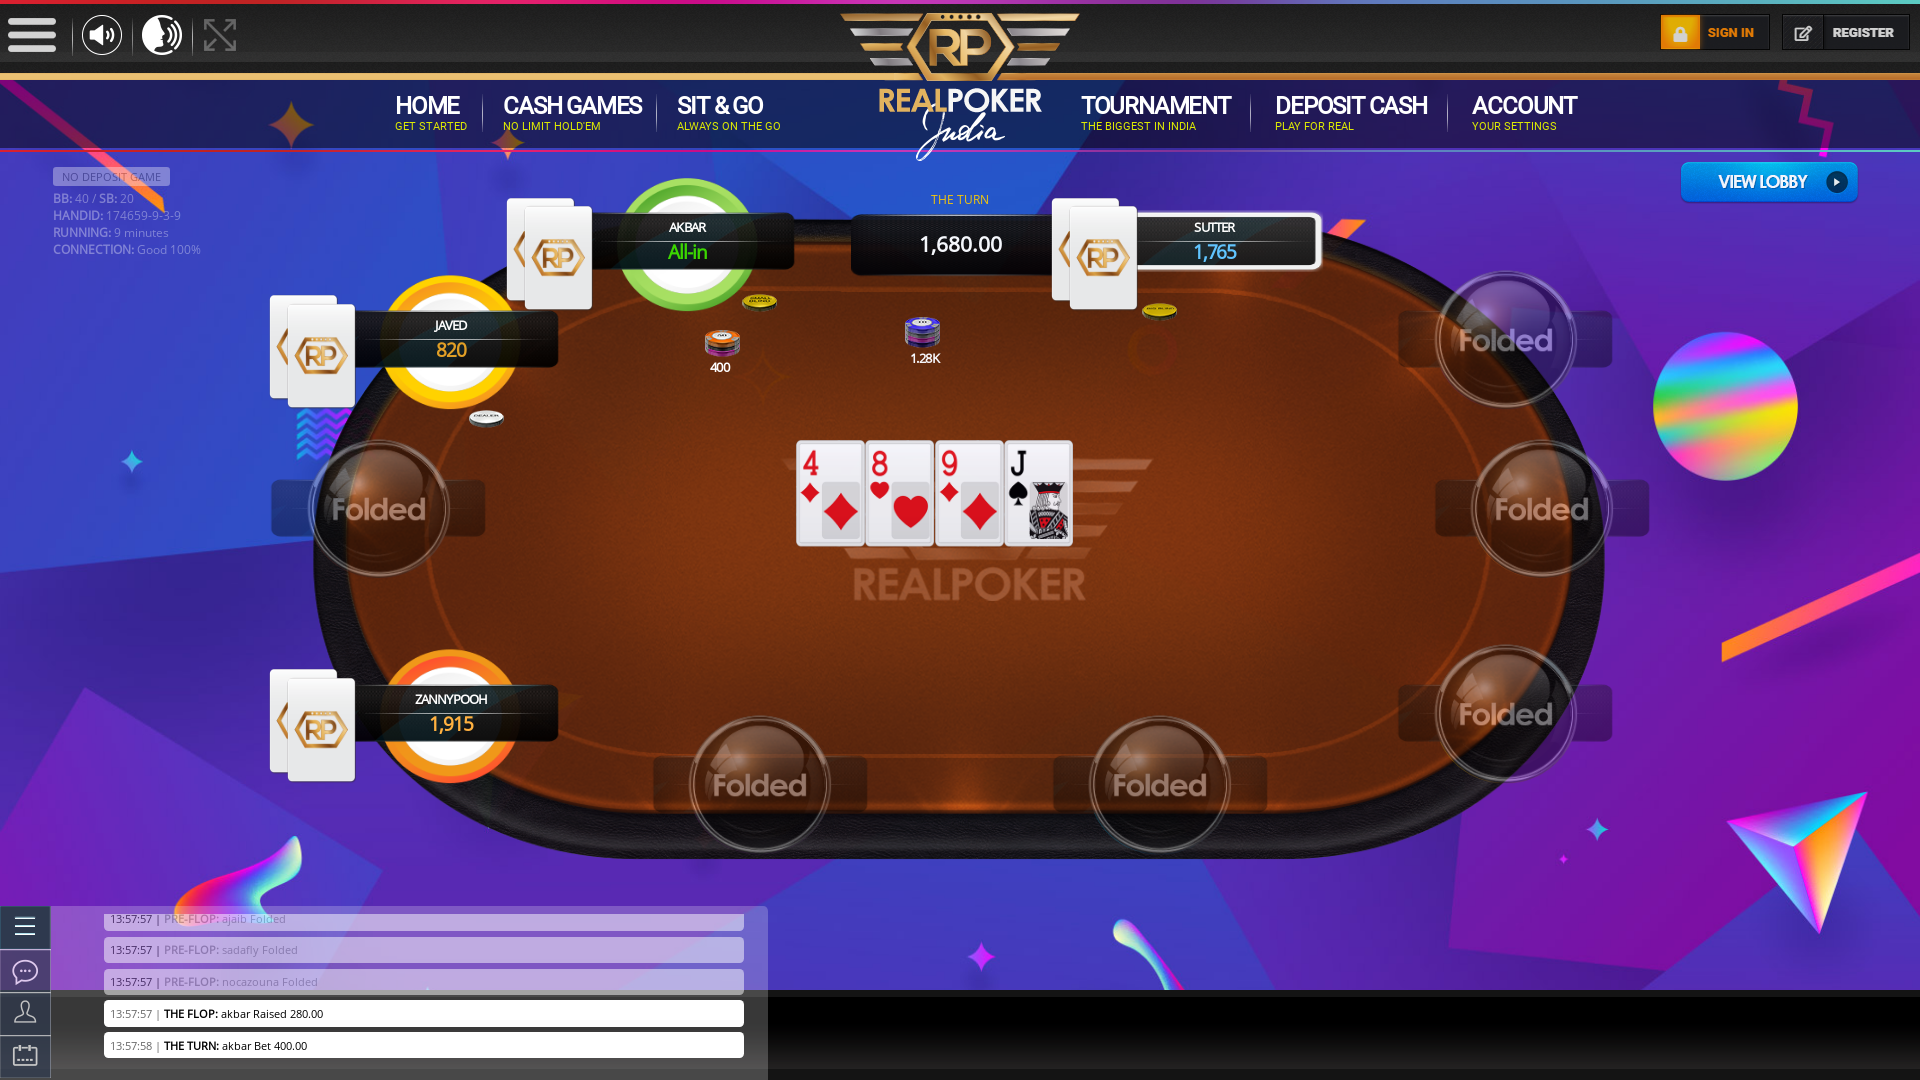 10 player poker in the 9th minute